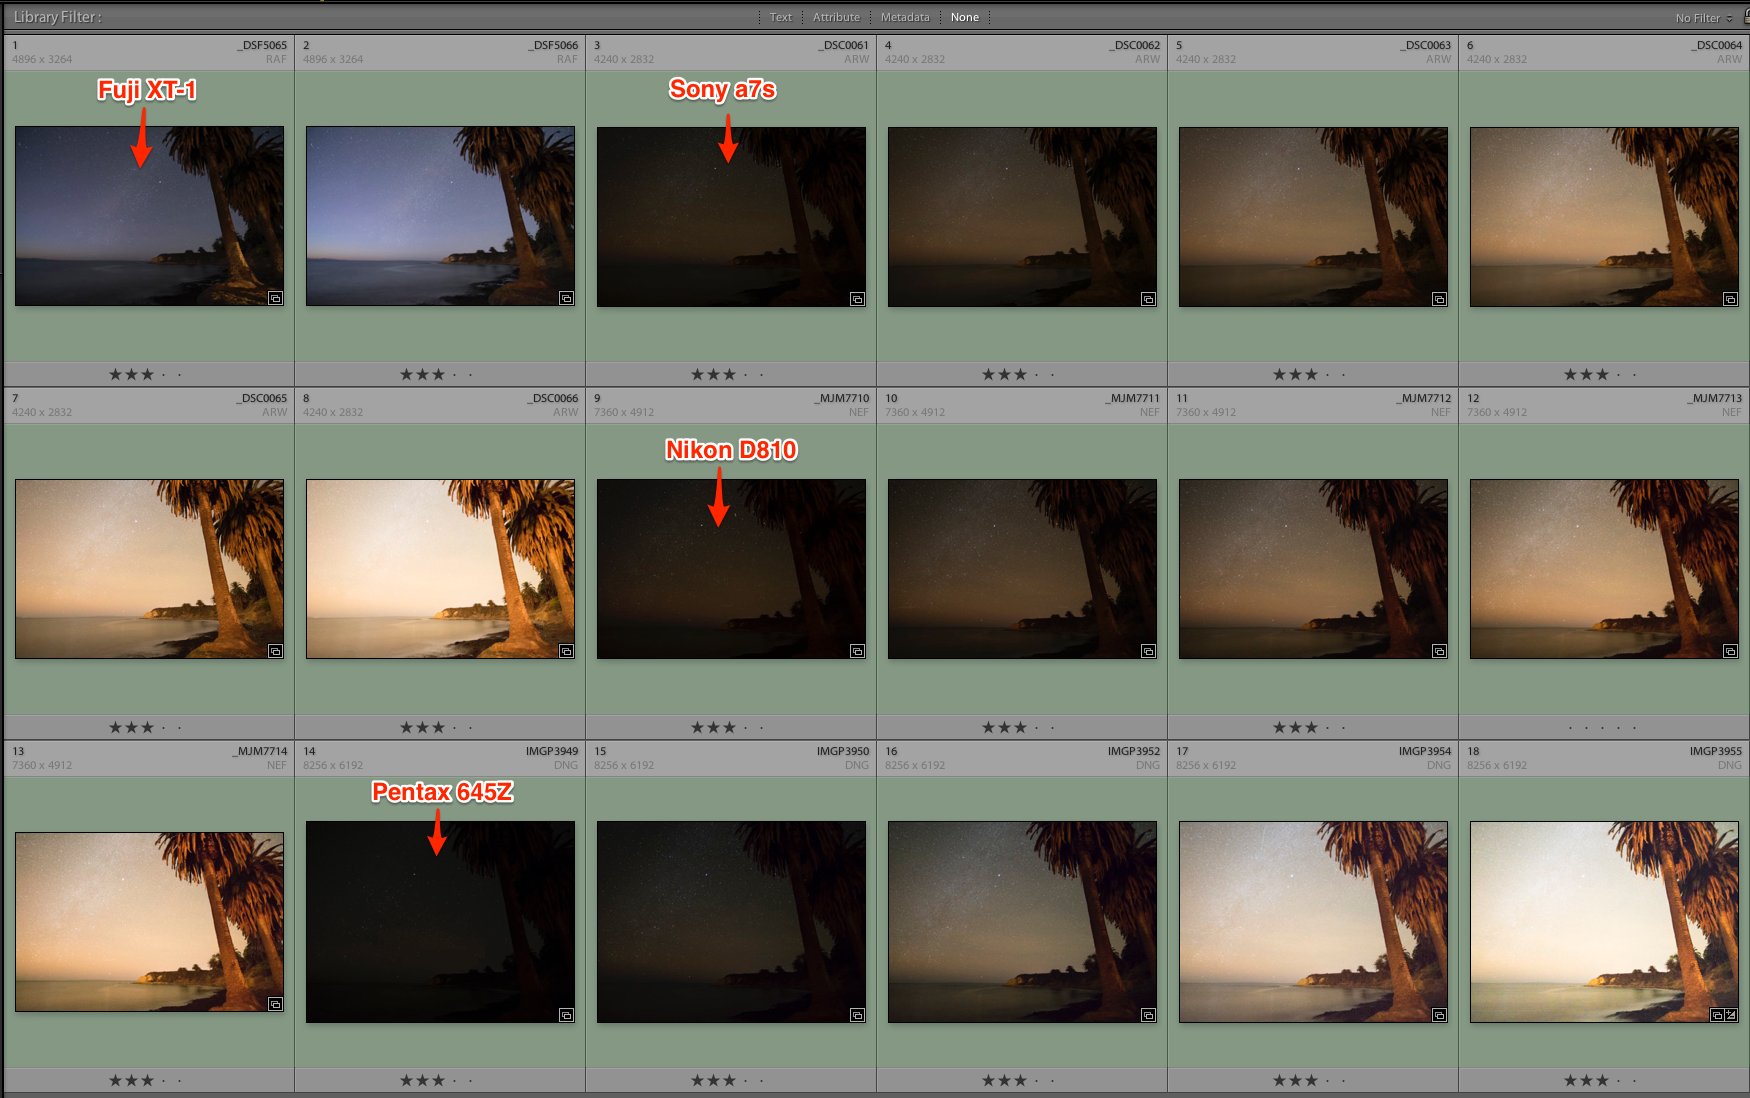 """*Notice the  Fuji  files (the first two, top left).I give Fuji a """"10"""" for accurate """"in camera"""" AWB/auto white balance.  THIS IS VERY INTERESTING, CONSIDERING FUJI'S PAST OF FILM MAKING!Of course you can obtain proper white balance in post production, with all the other camera files, but having WB this close """"in camera"""" sure is nice."""